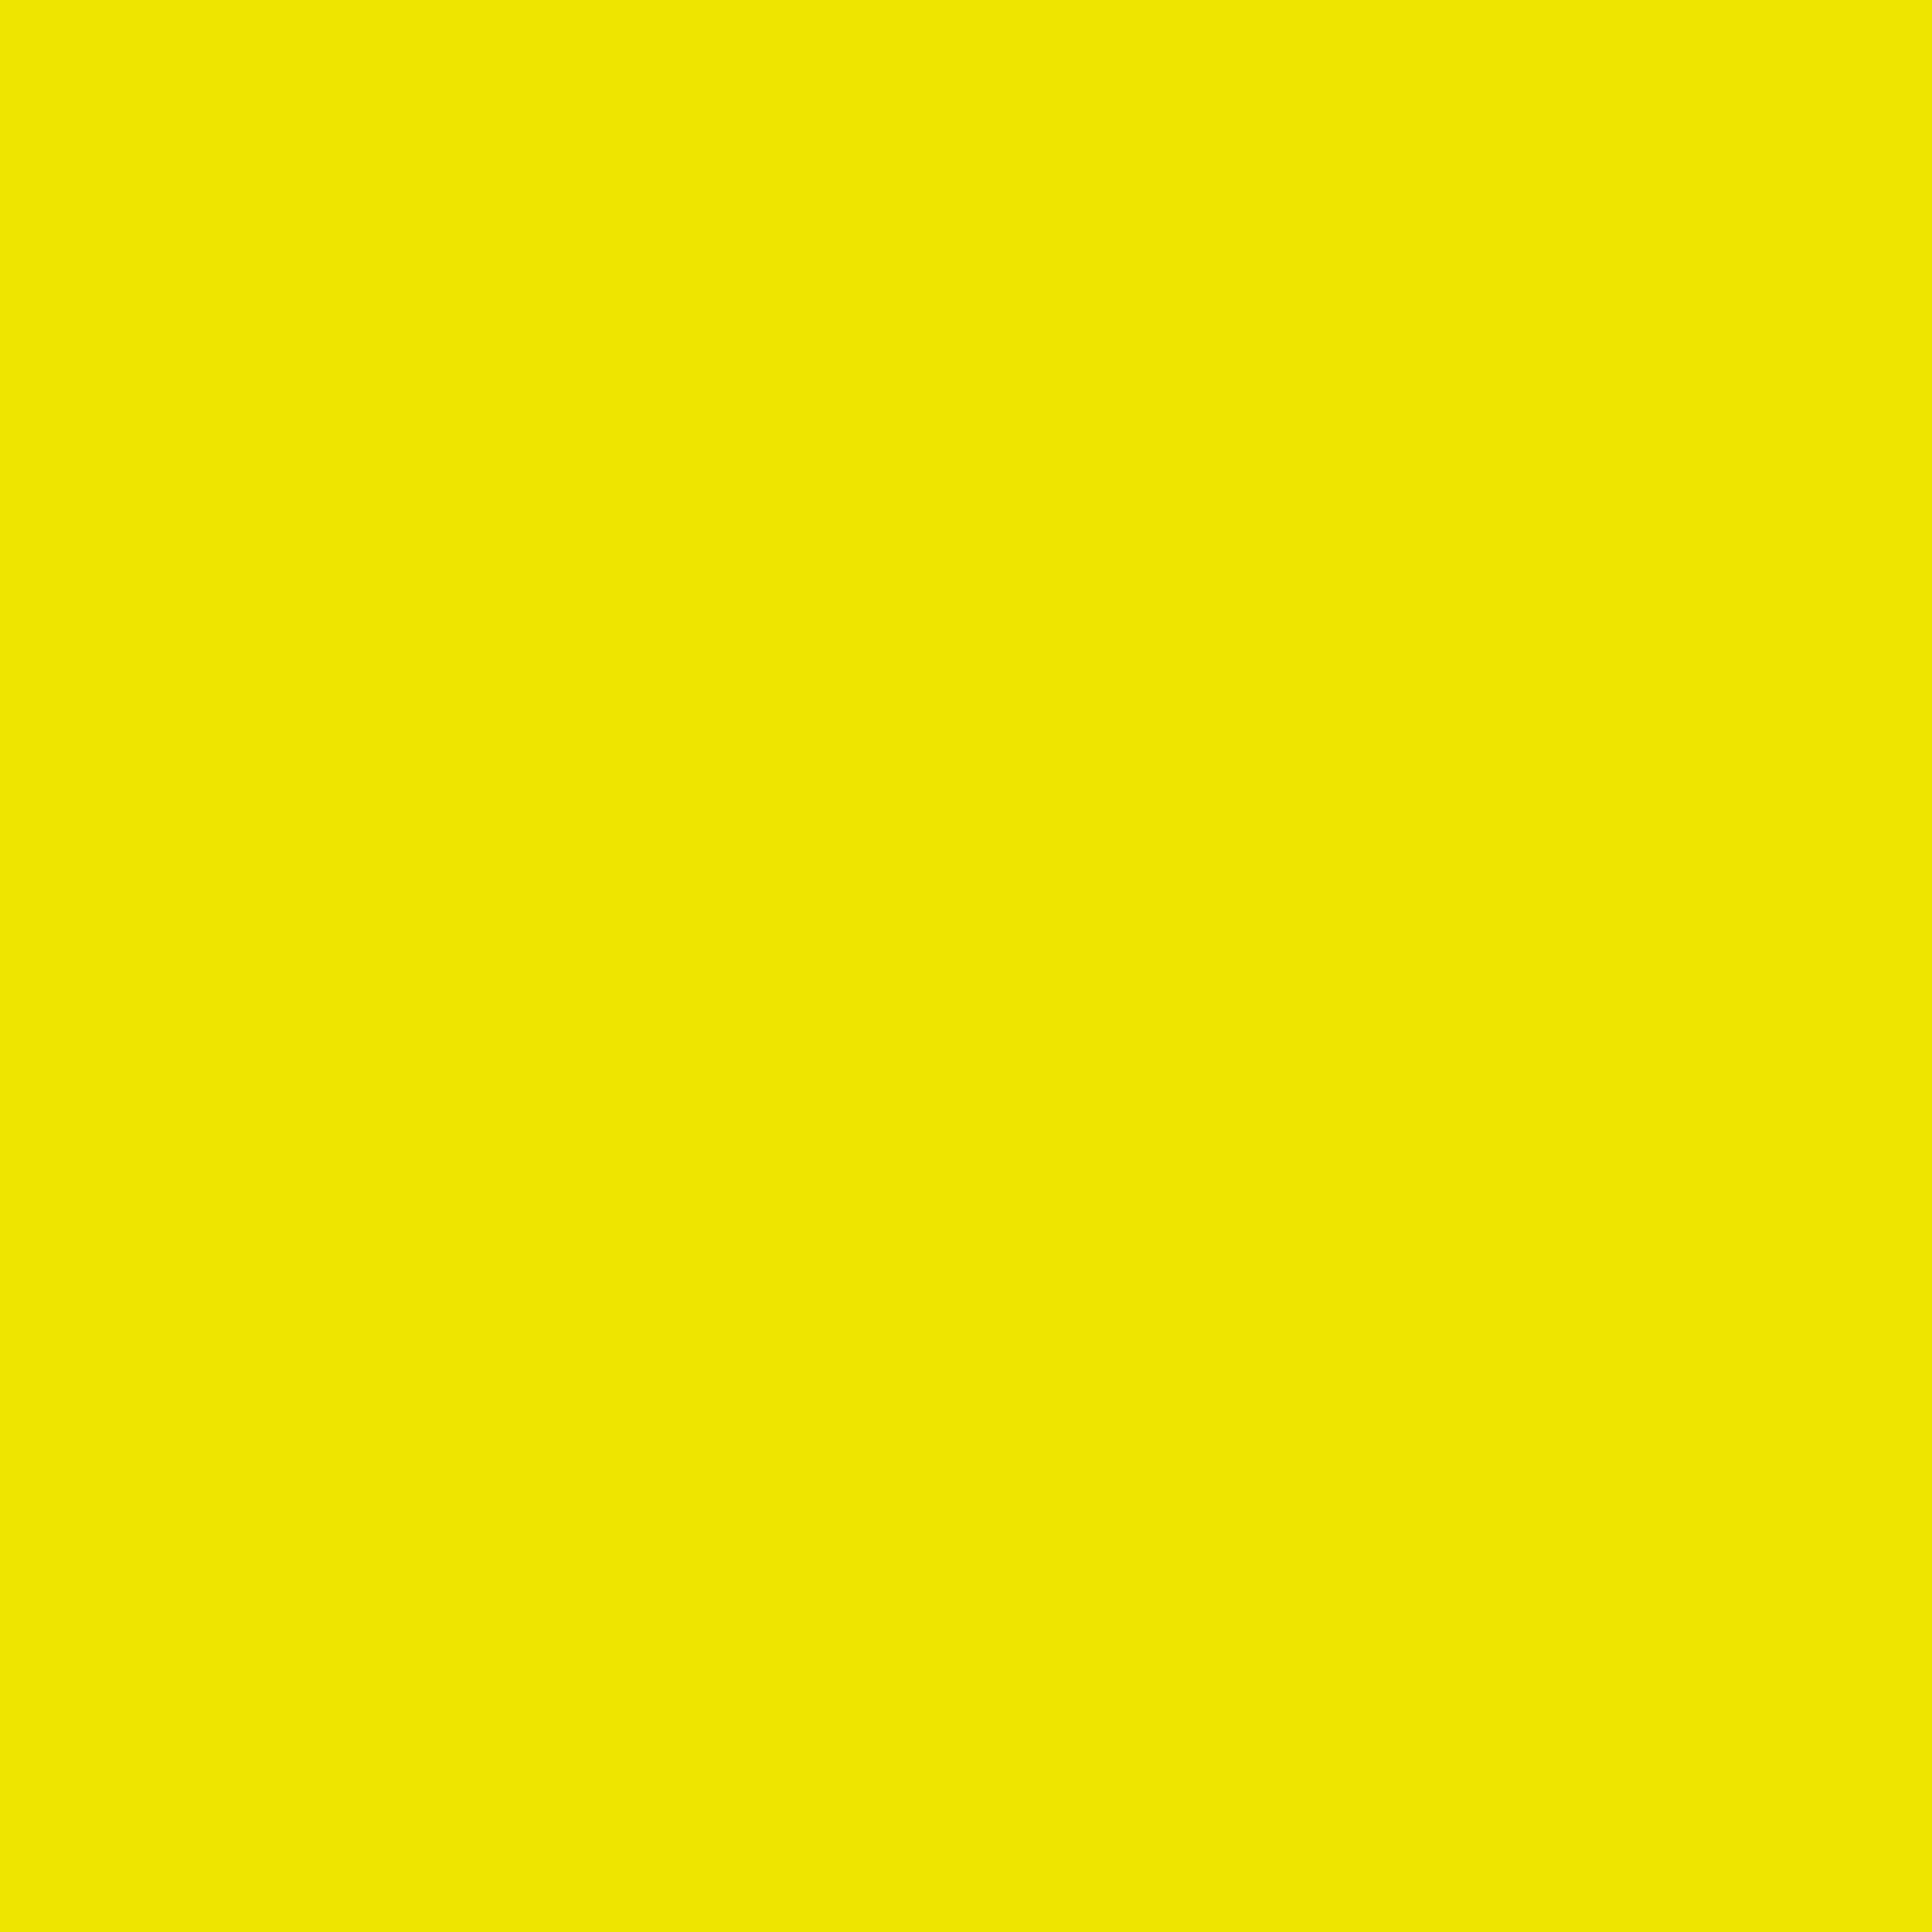 2048x2048 Titanium Yellow Solid Color Background